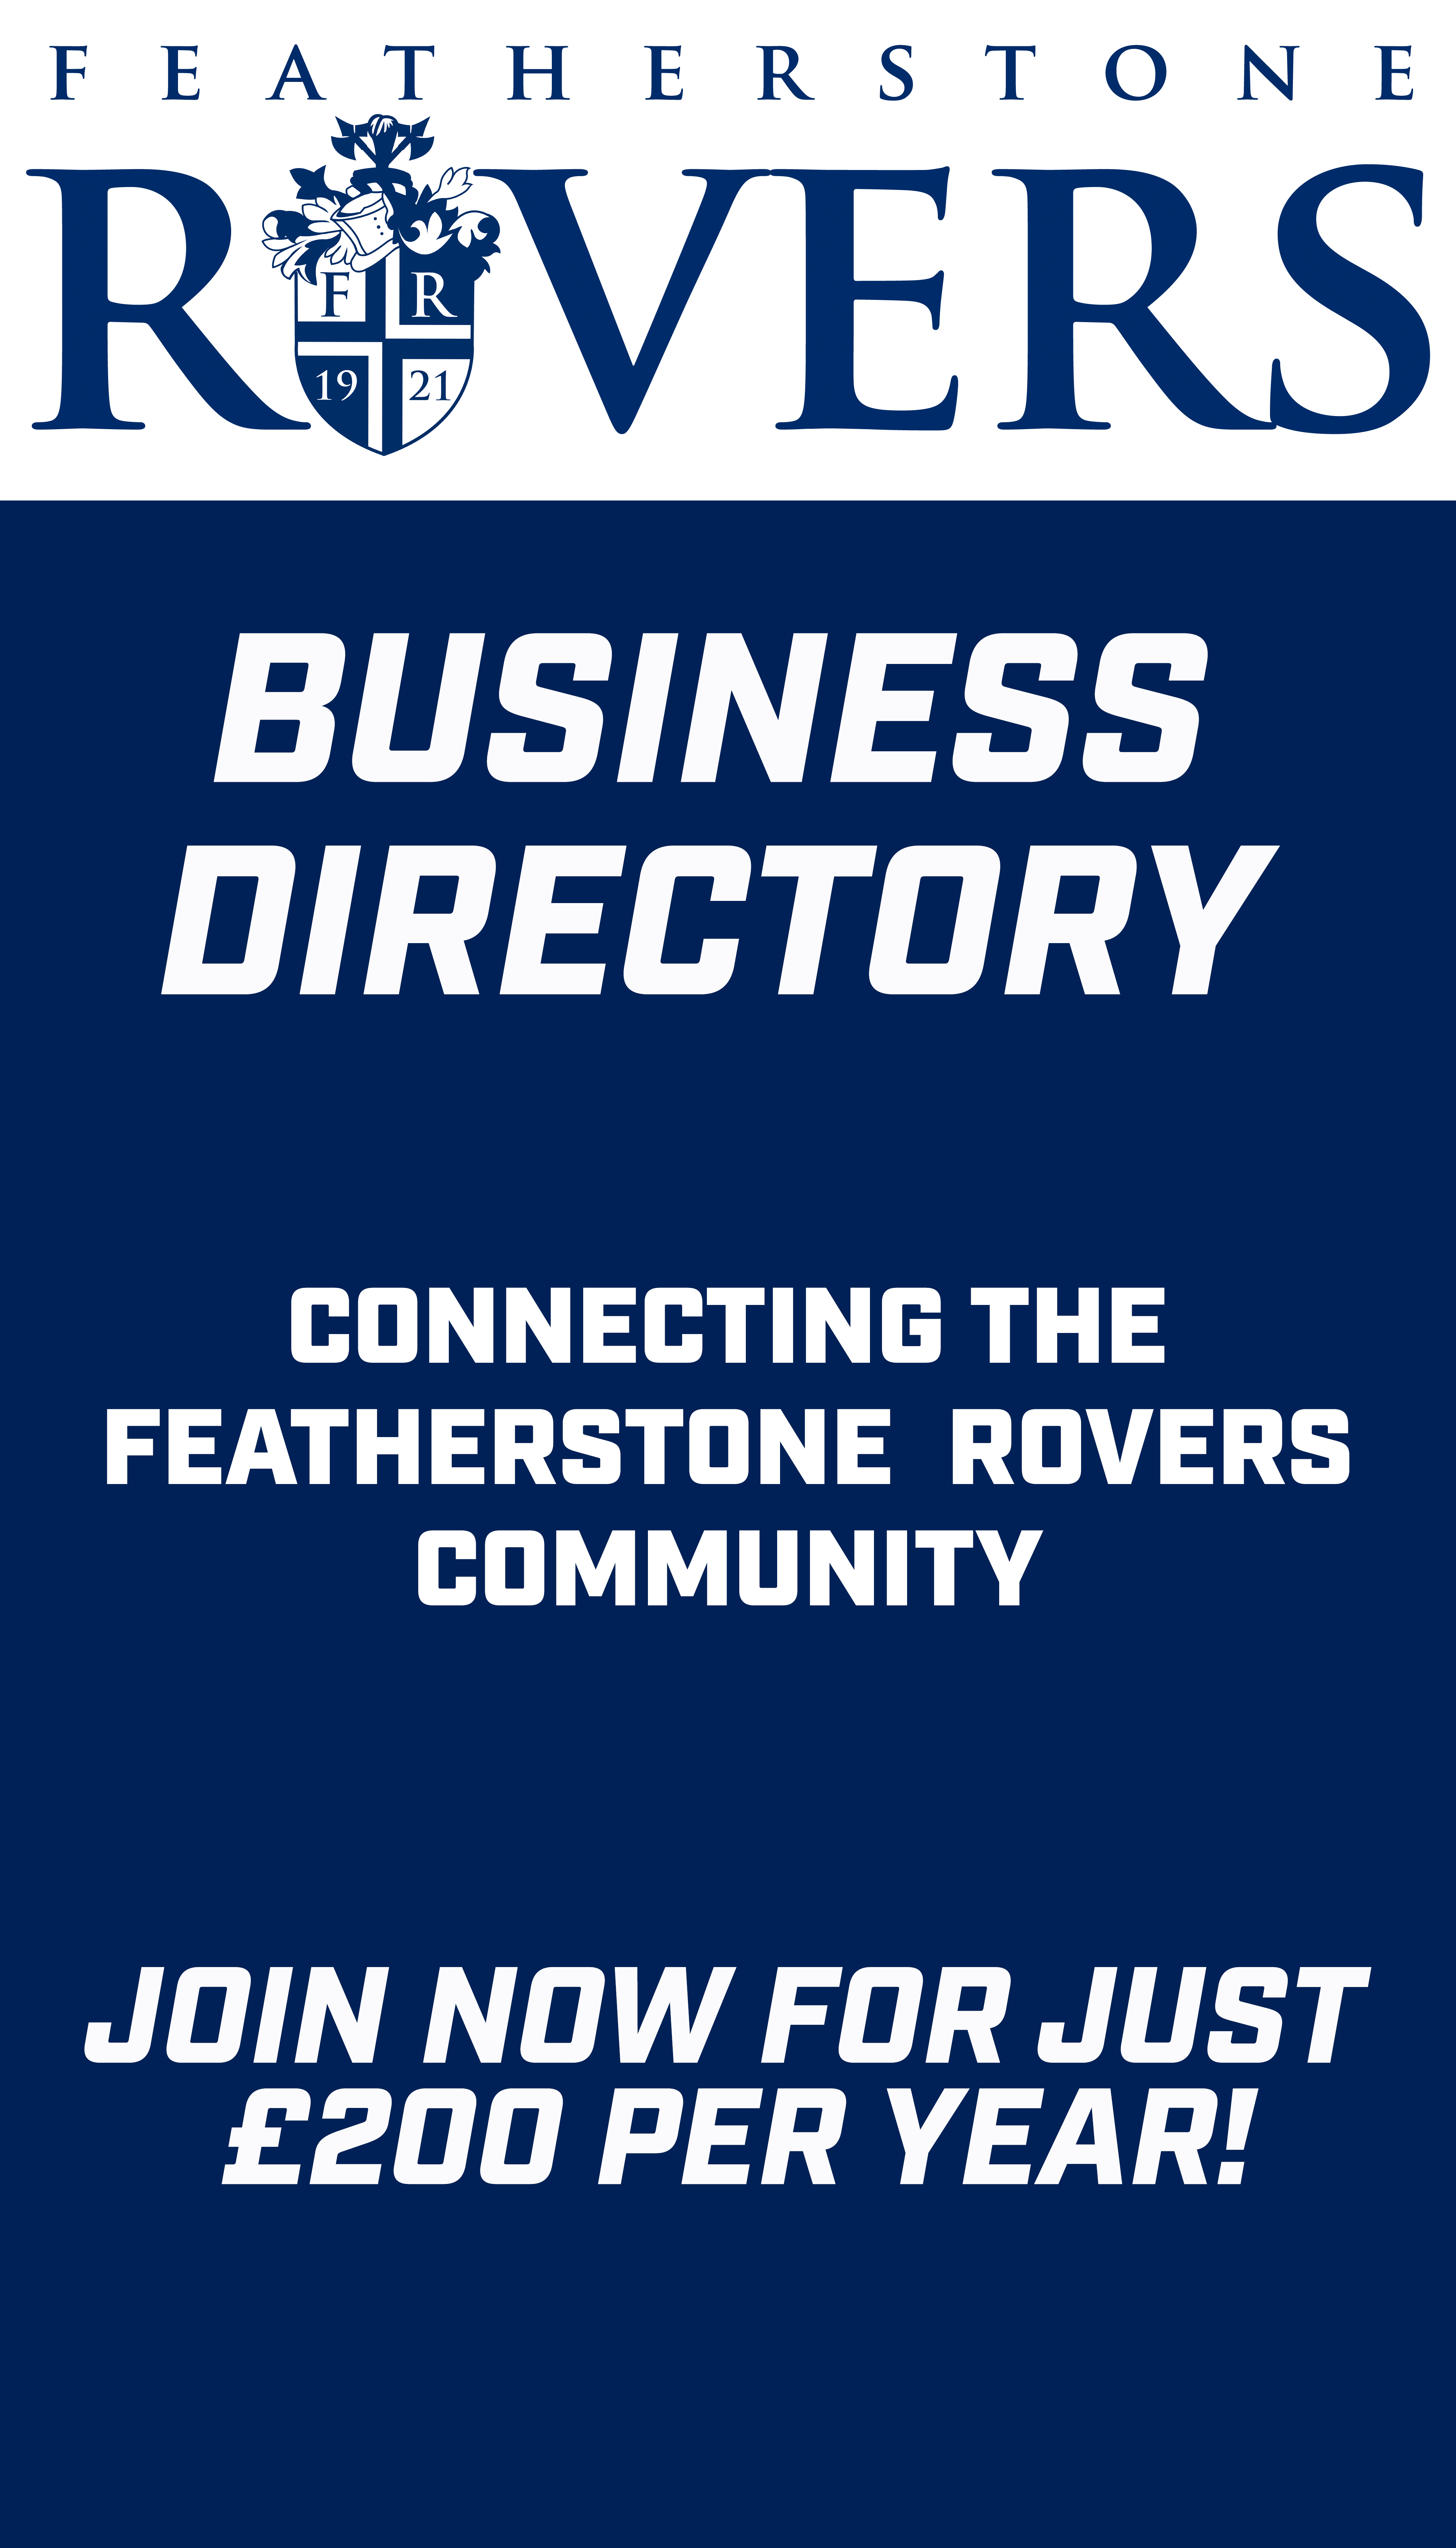 BUSINESS DIRECTORY ADVERT